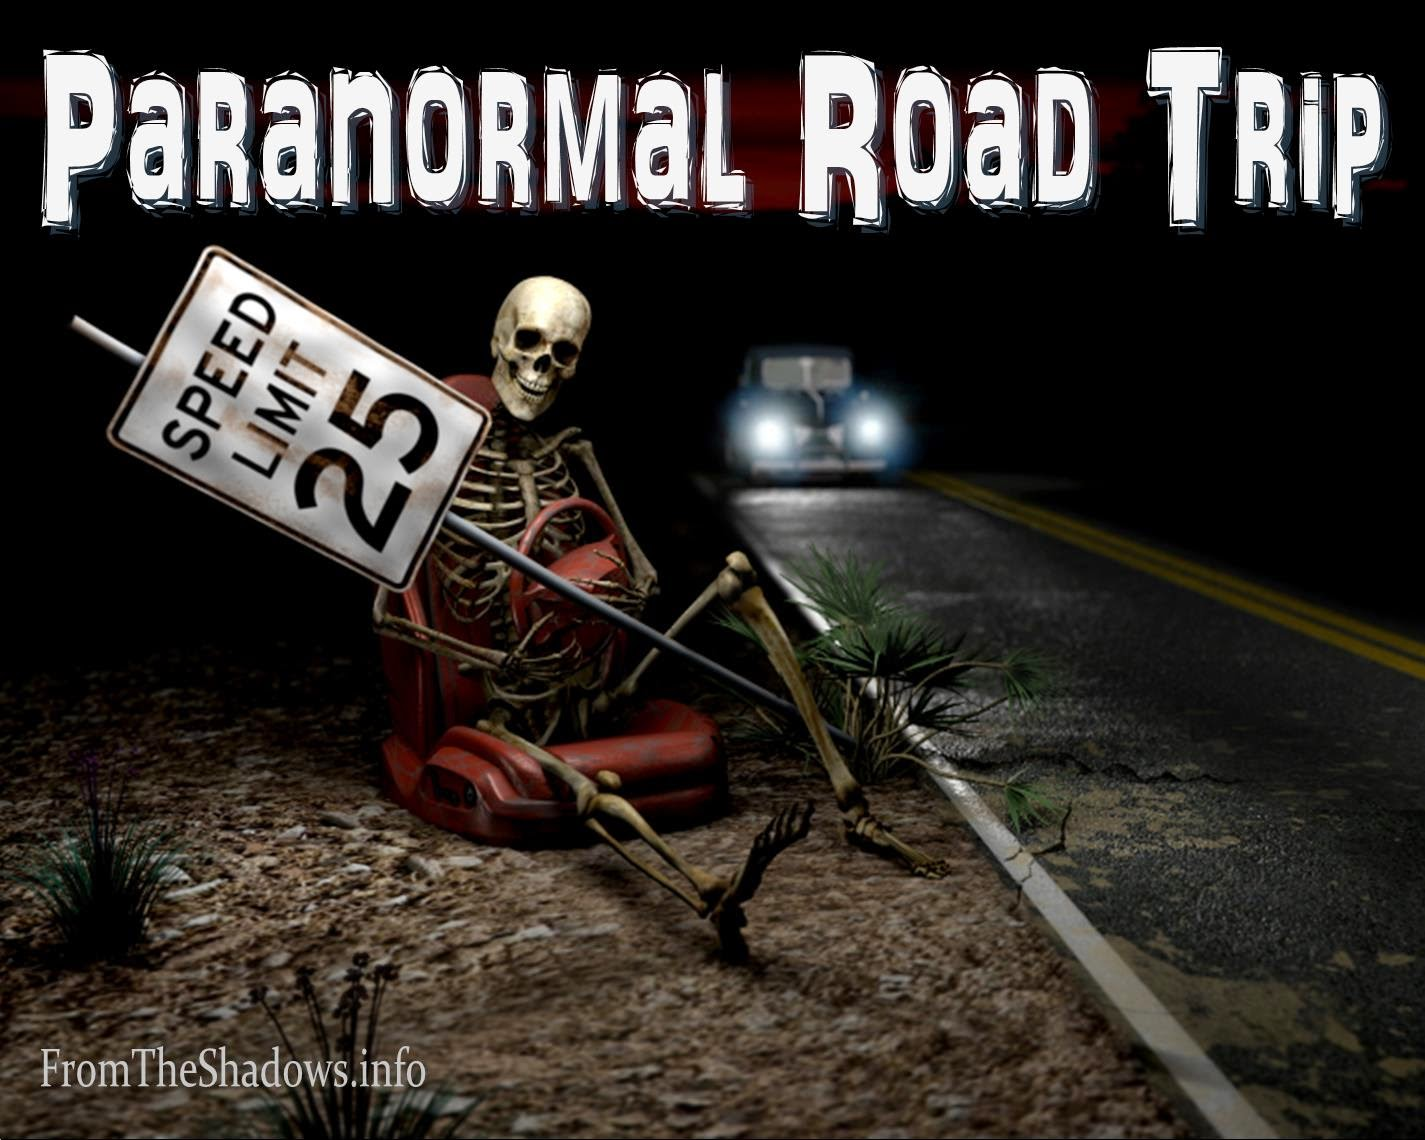 Paranormal Road Trip: Destination Rapid City with Elizabeth Bear